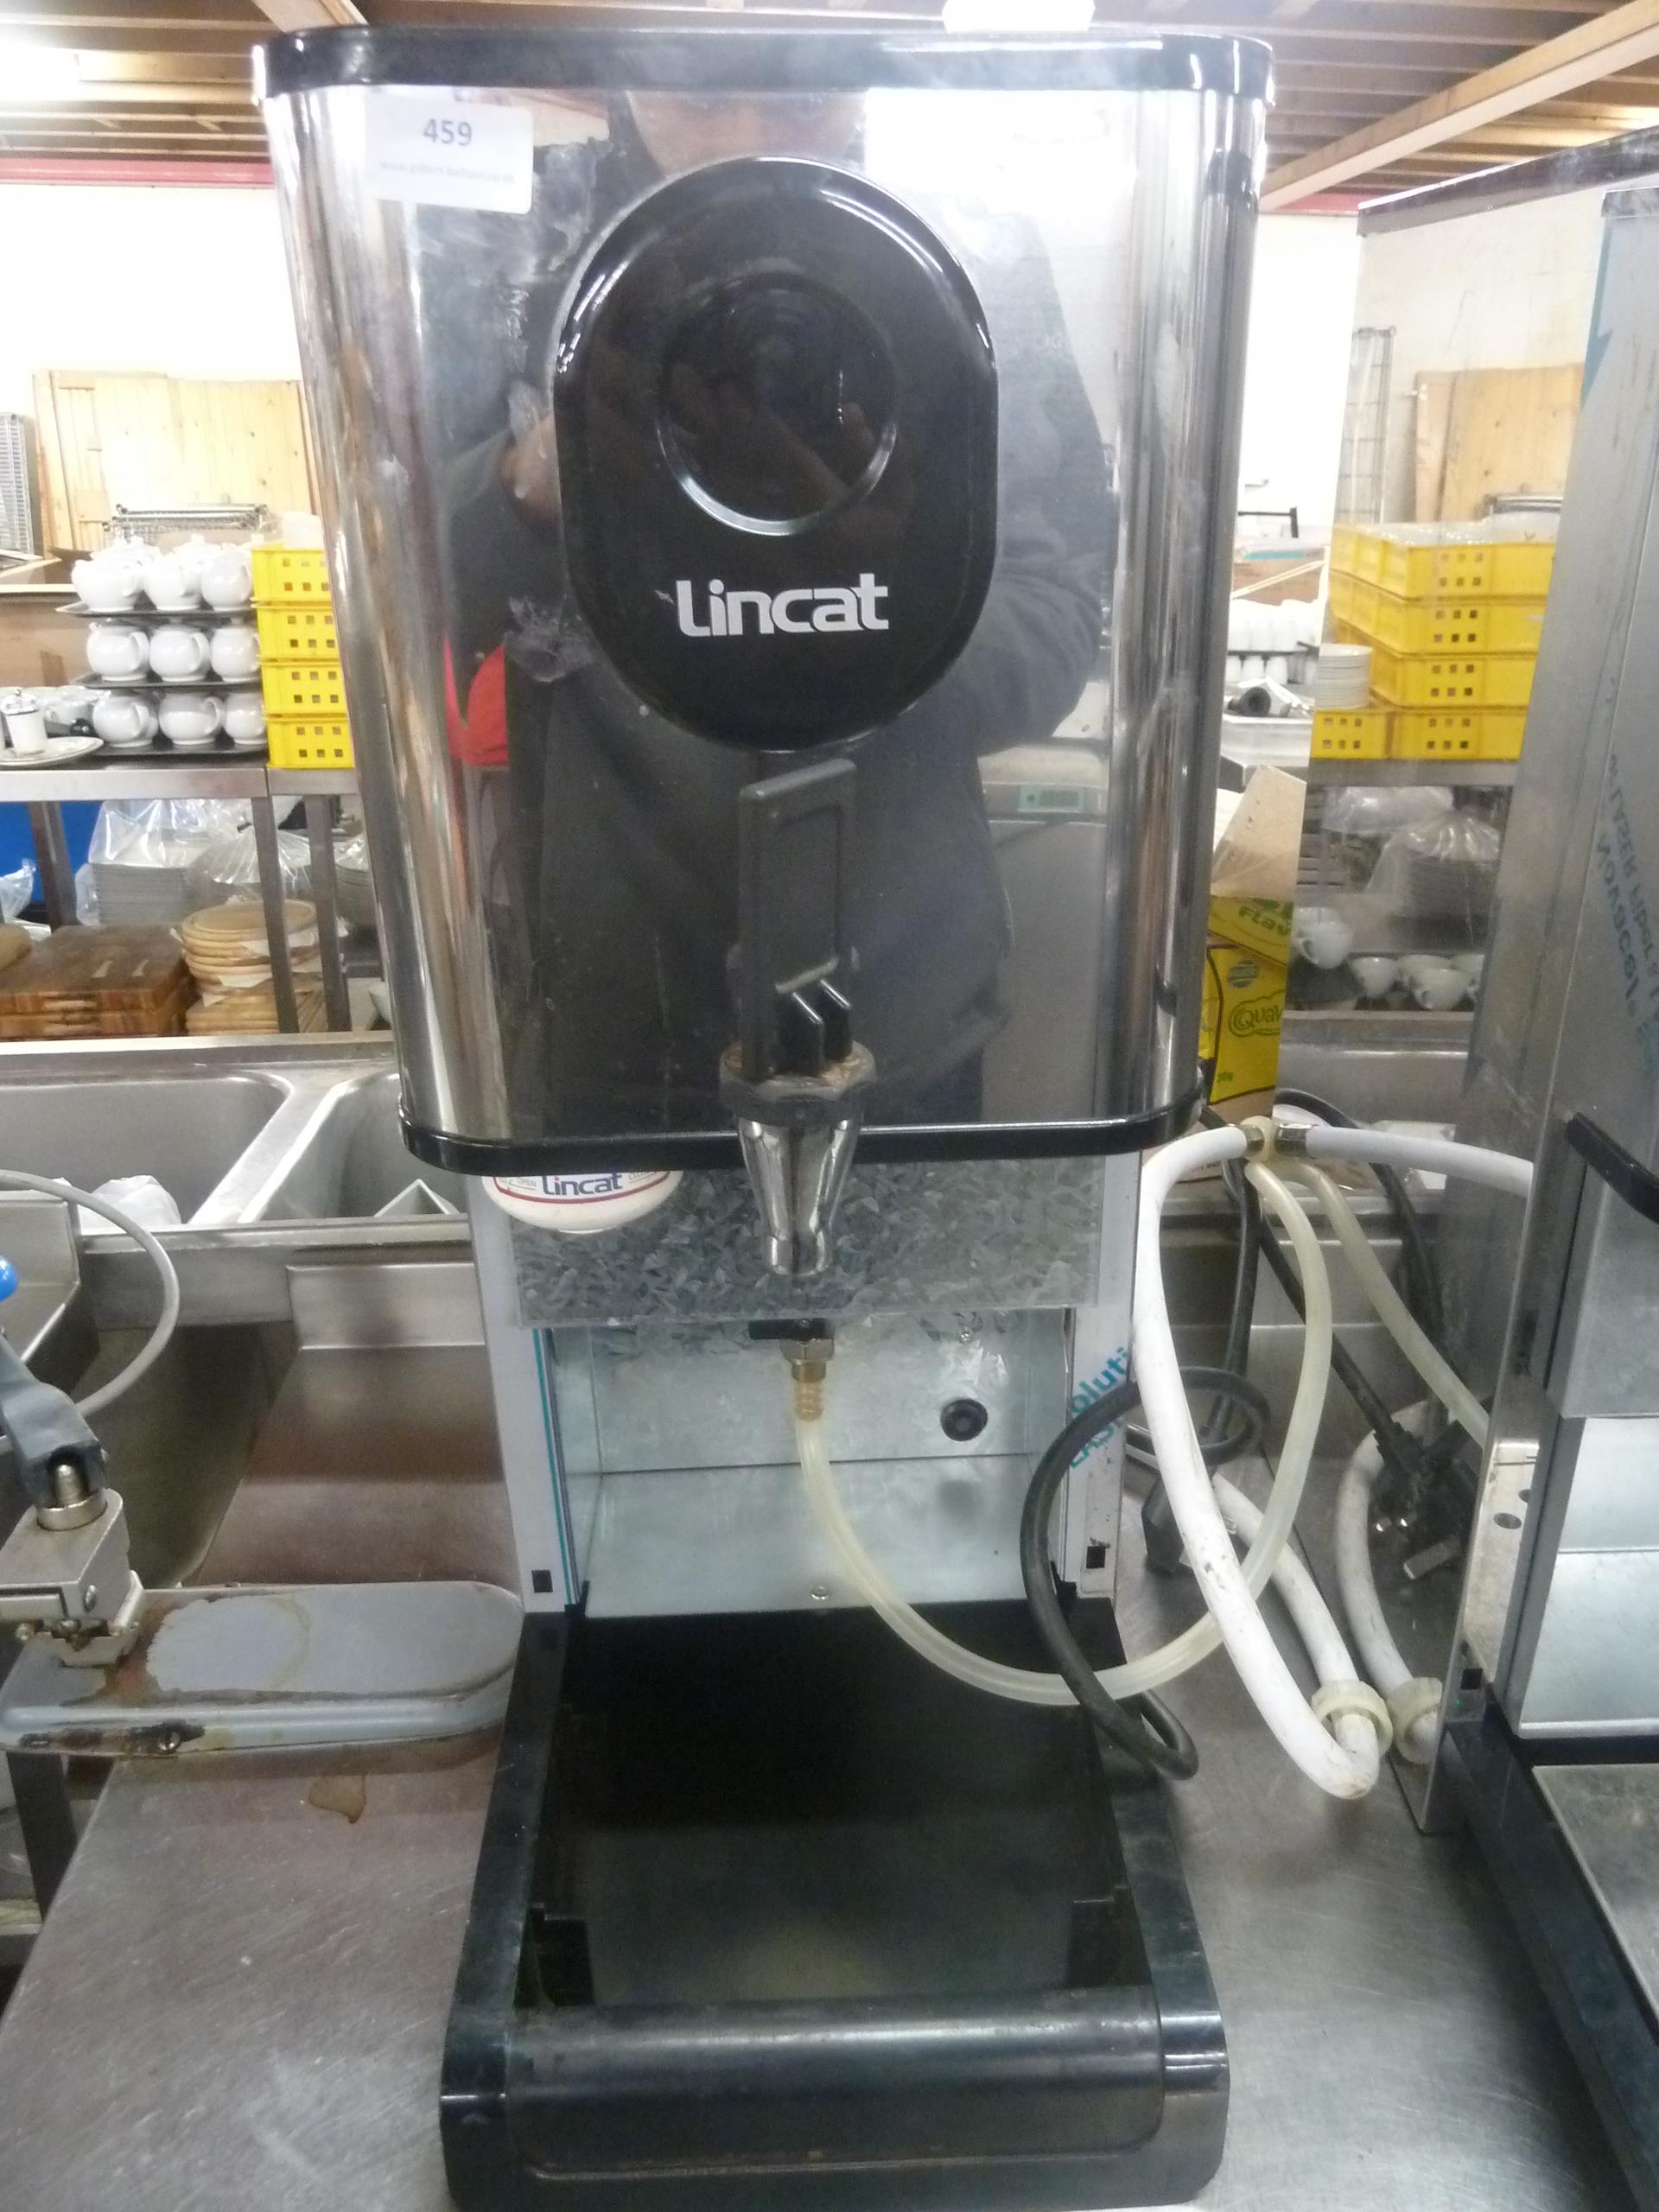 *Lincat hot water boiler